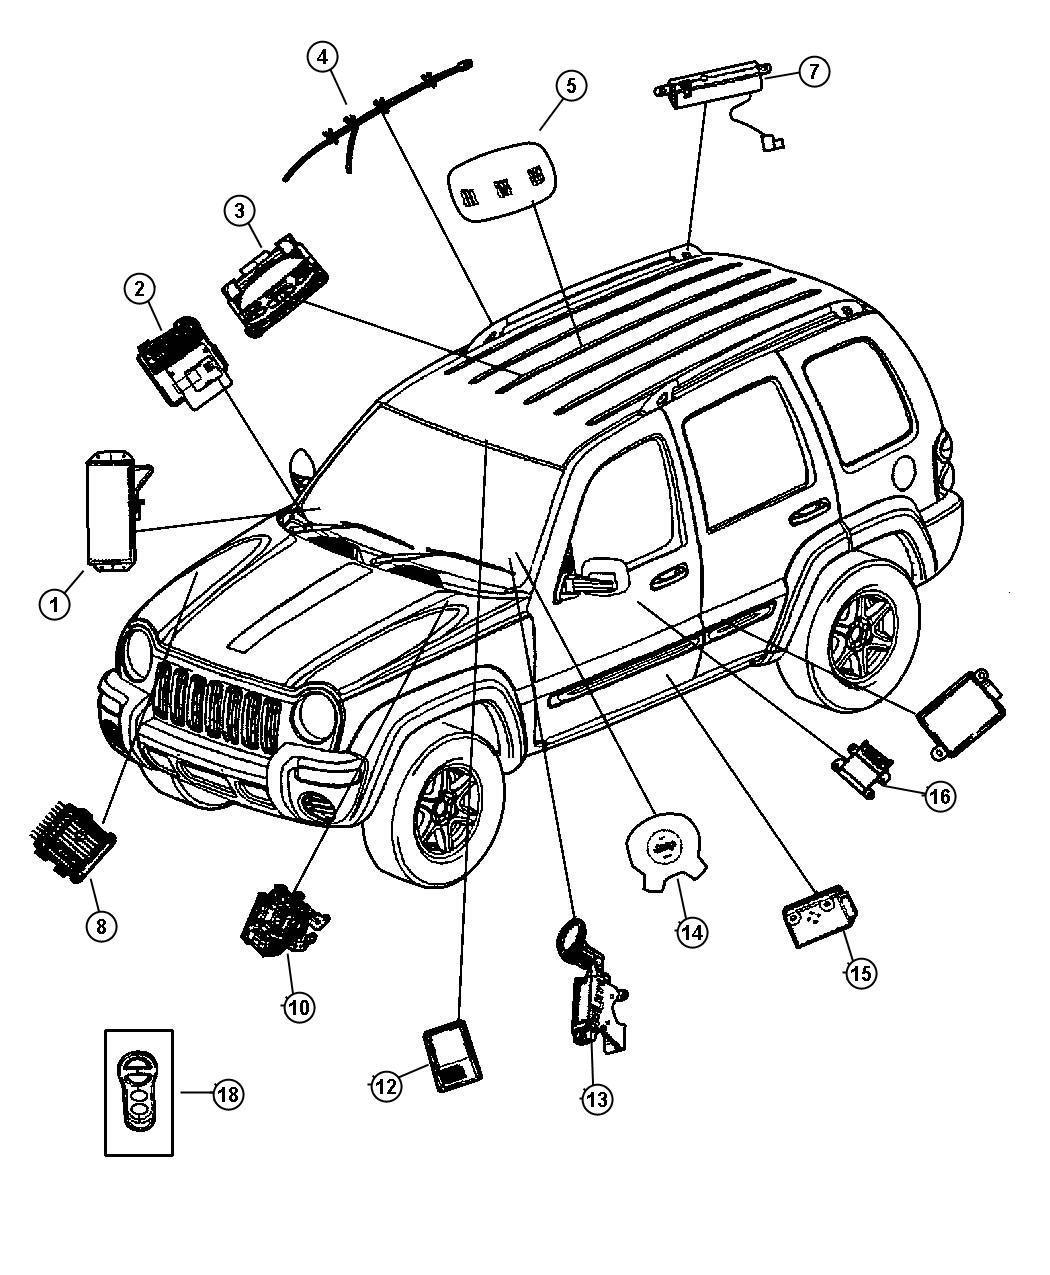 25 2004 Jeep Liberty Wiring Diagram